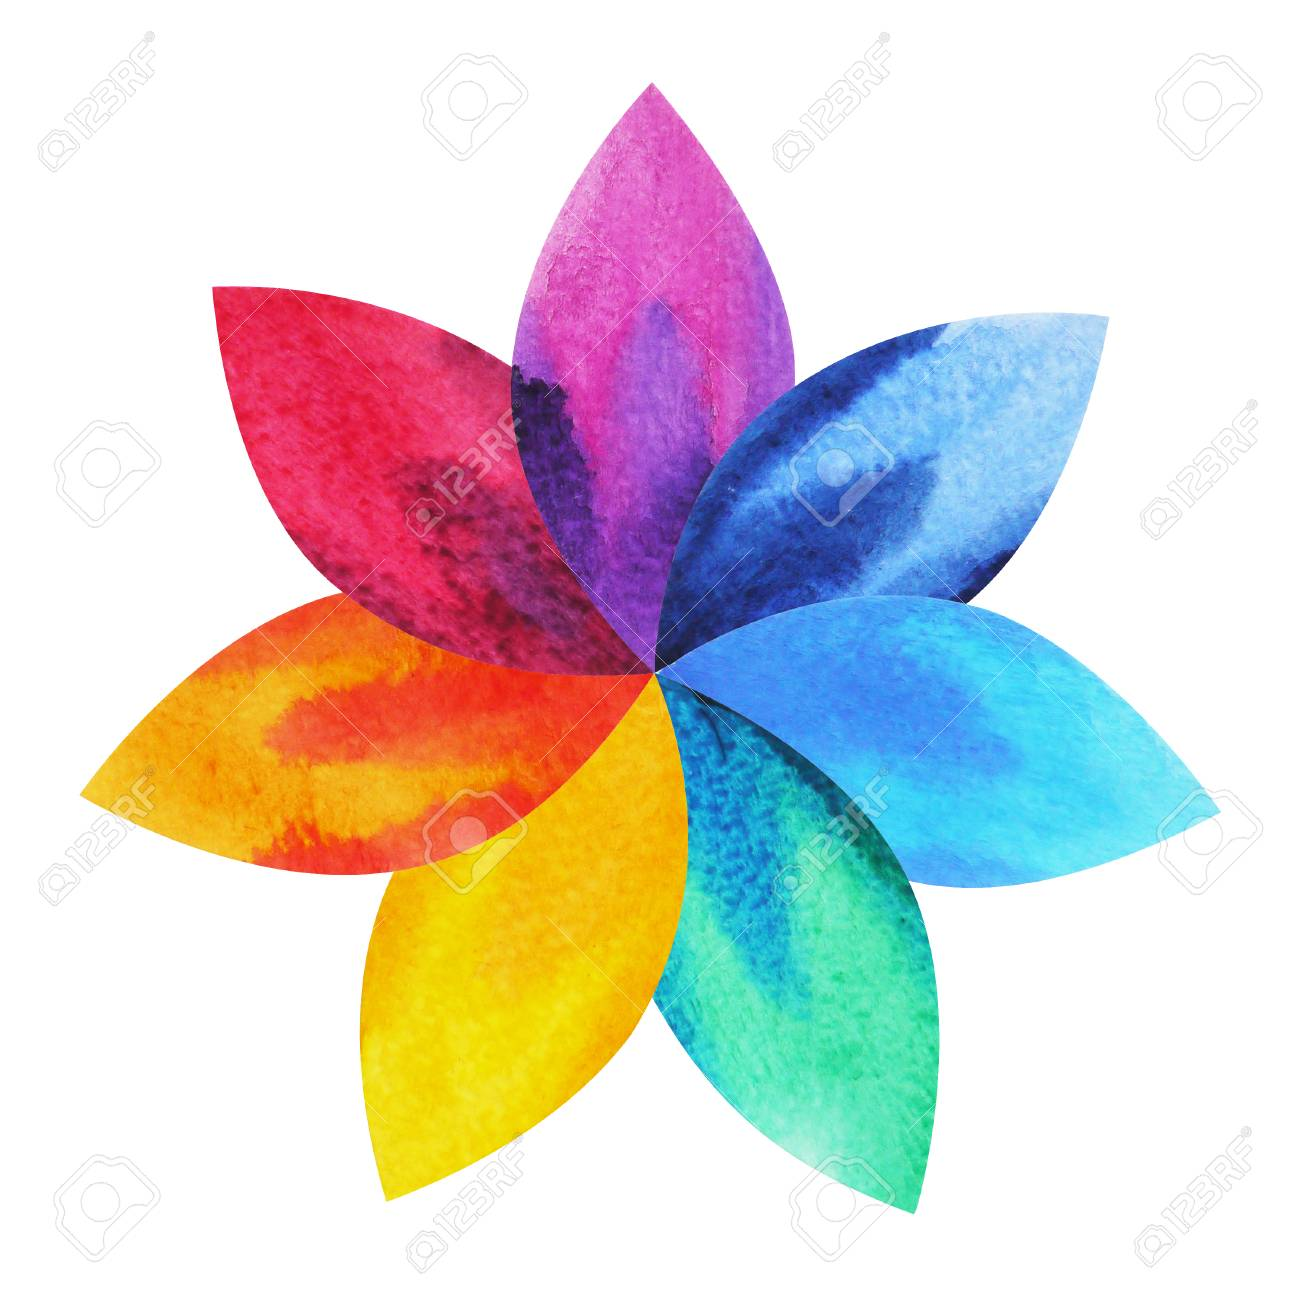 7 color of chakra sign symbol colorful lotus flower icon 7 color of chakra sign symbol colorful lotus flower icon watercolor painting hand drawn mightylinksfo Images